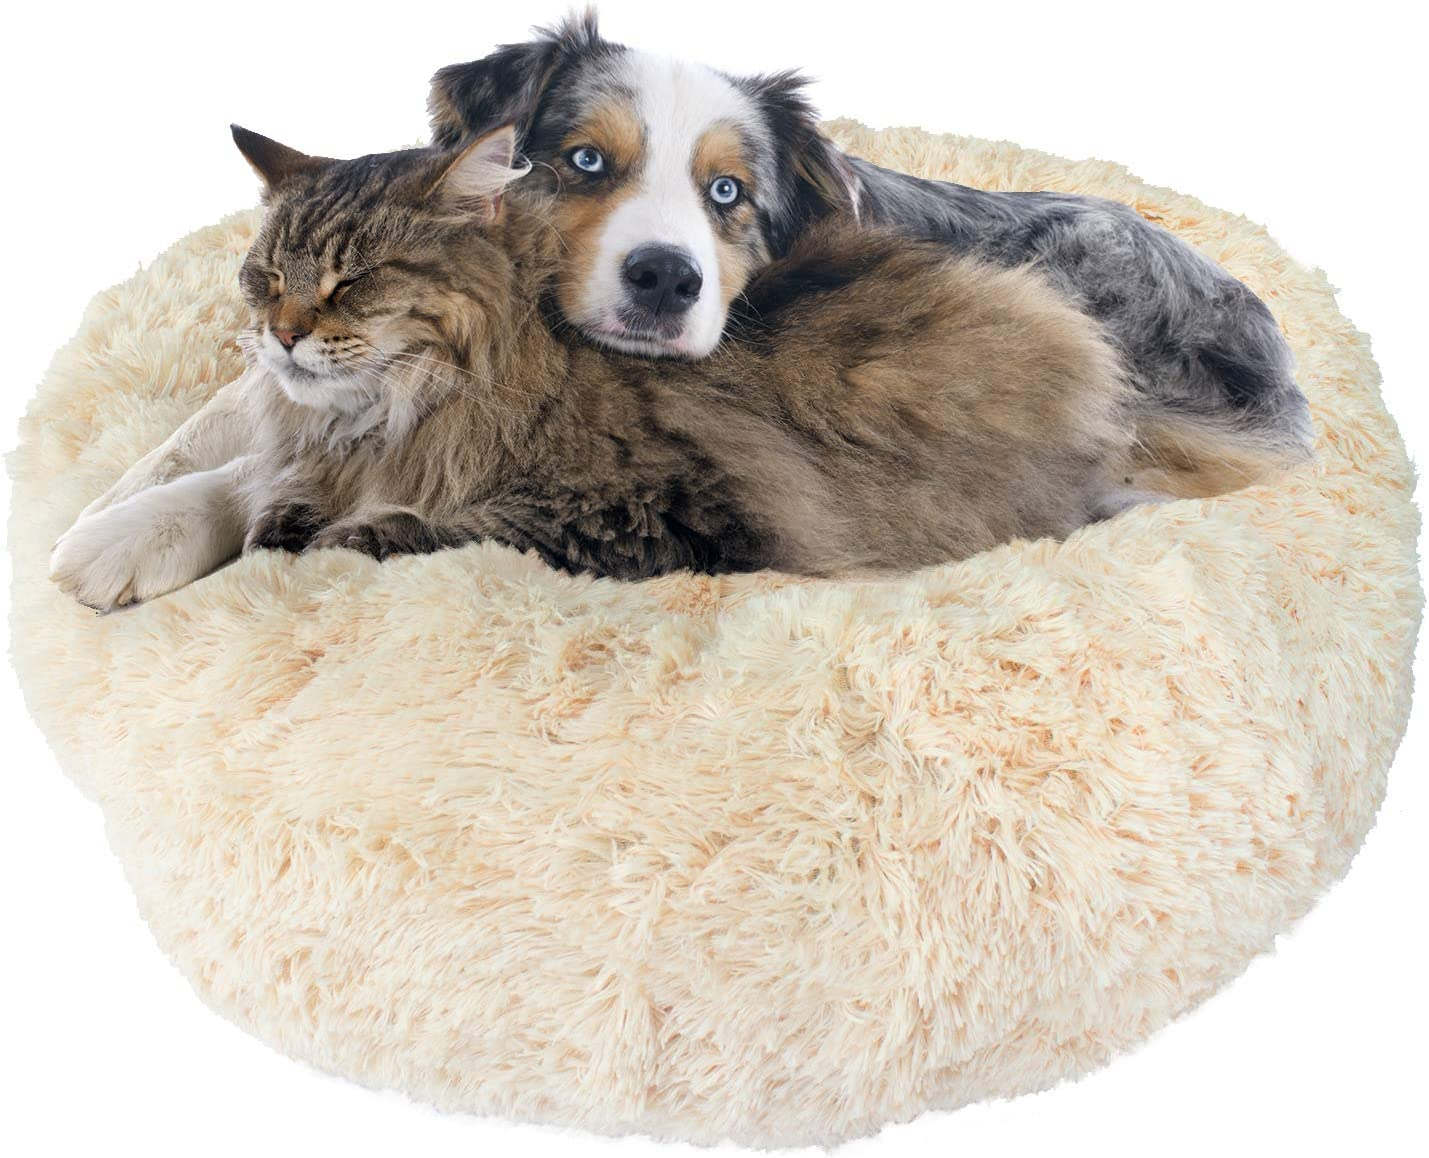 Premium Donut Dog Bed, Cozy Poof Style Giant Pet Bed Great for Cats Dogs – Orthopedic, Washable, Durable Dog Bed Oatmeal Navy Blue